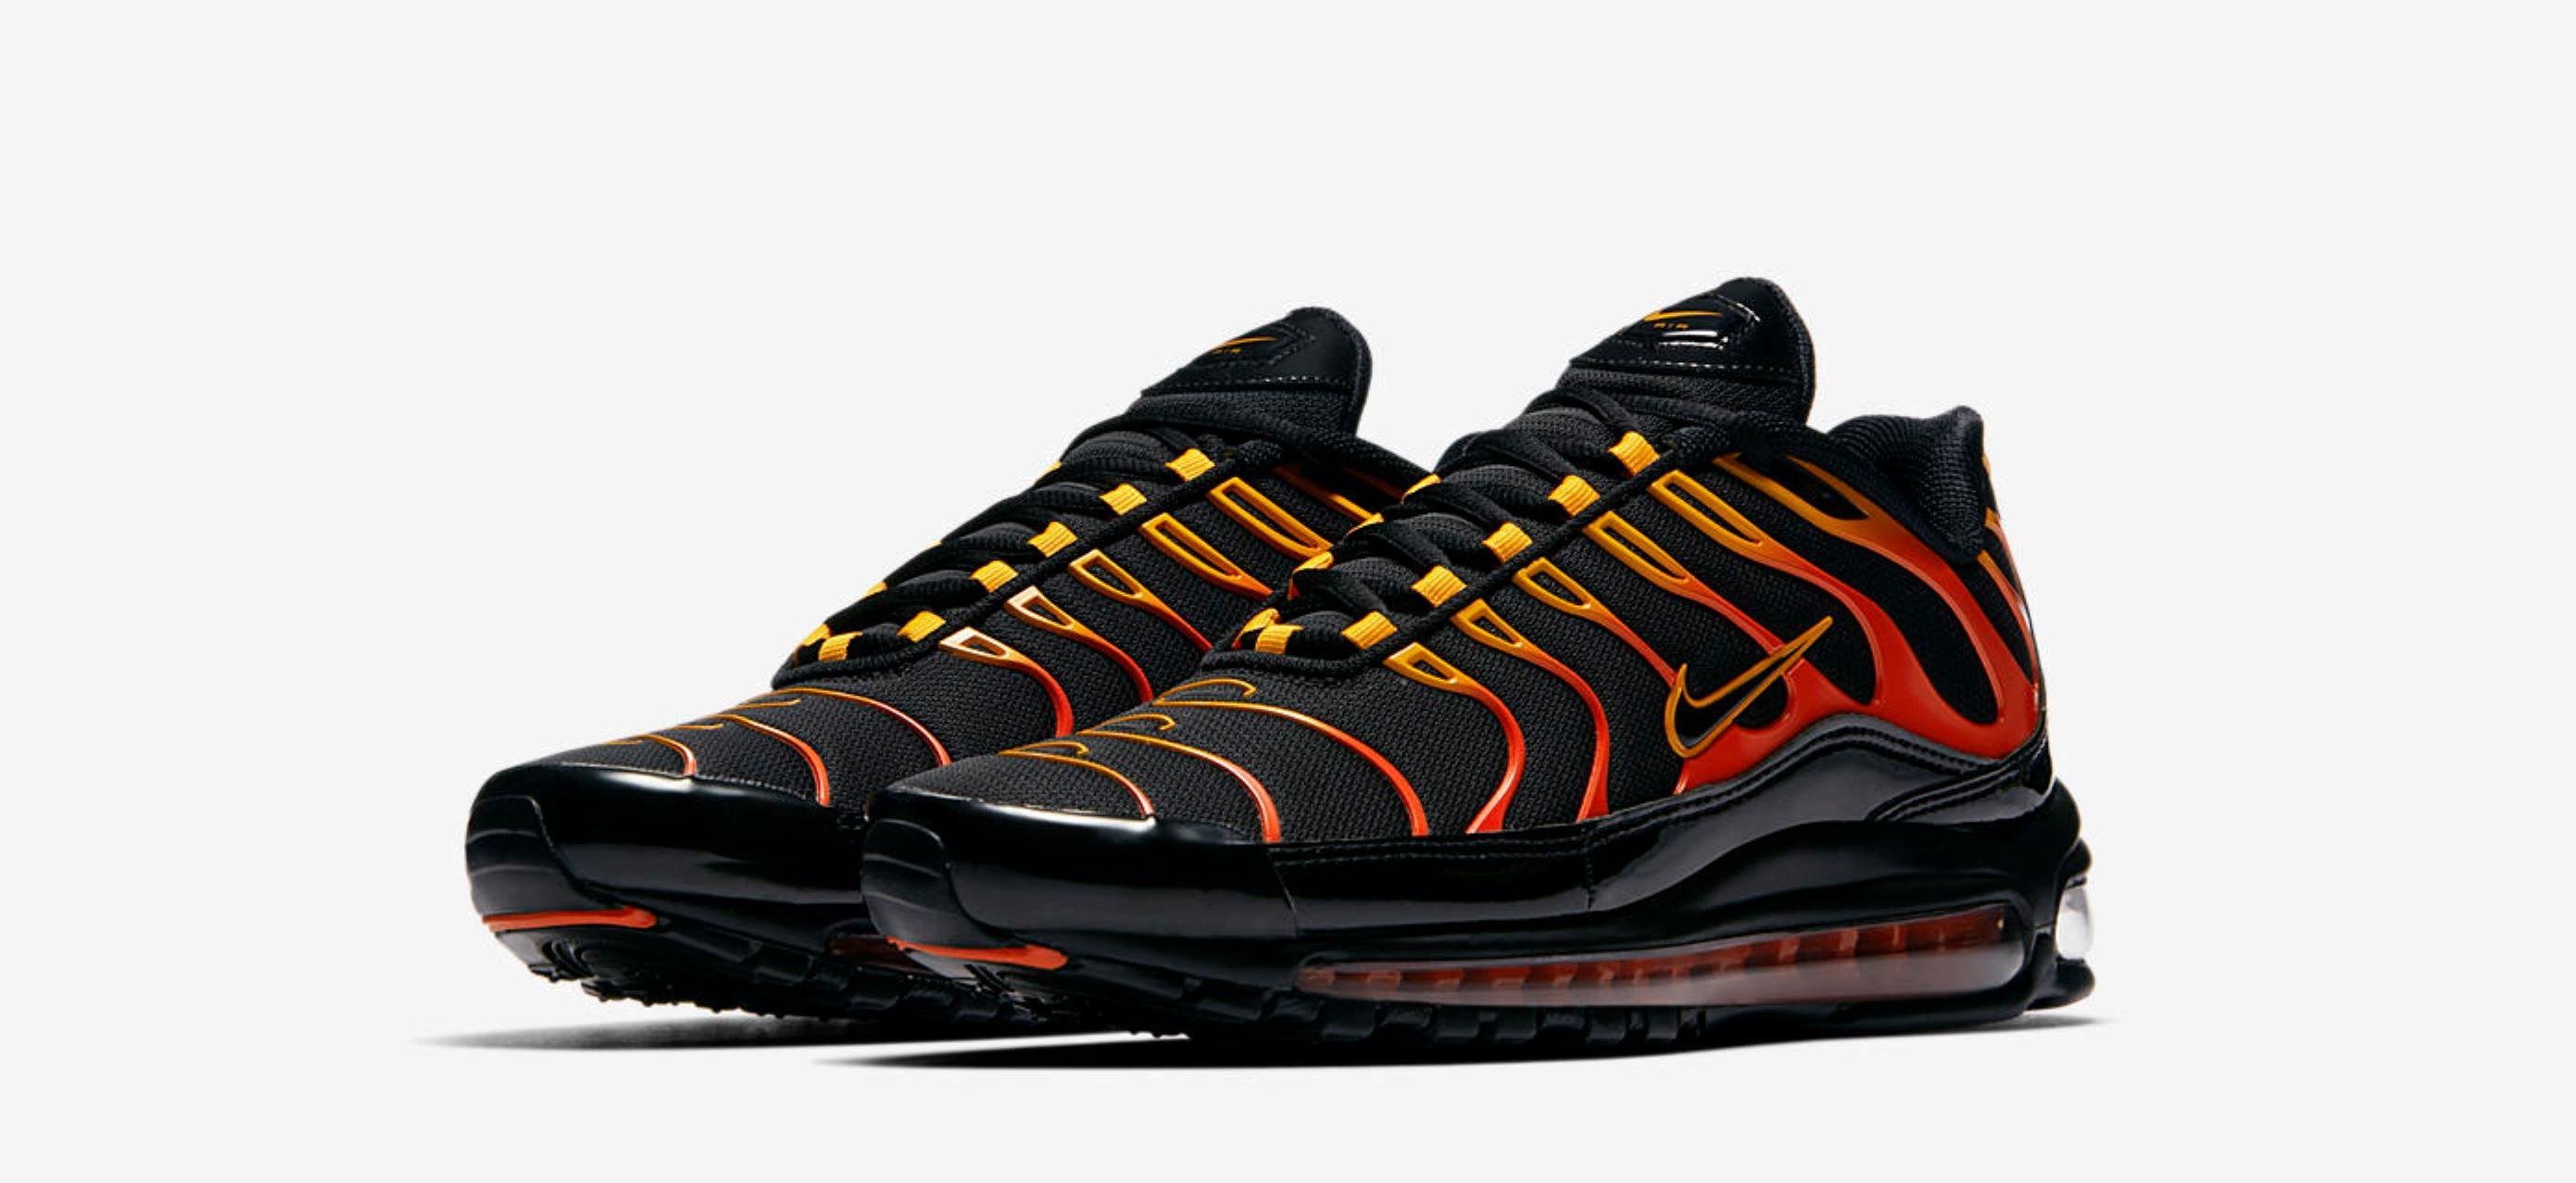 online store 0f261 ce469 Flame On with the Nike Air Max Plus 97 'Shock Orange ...